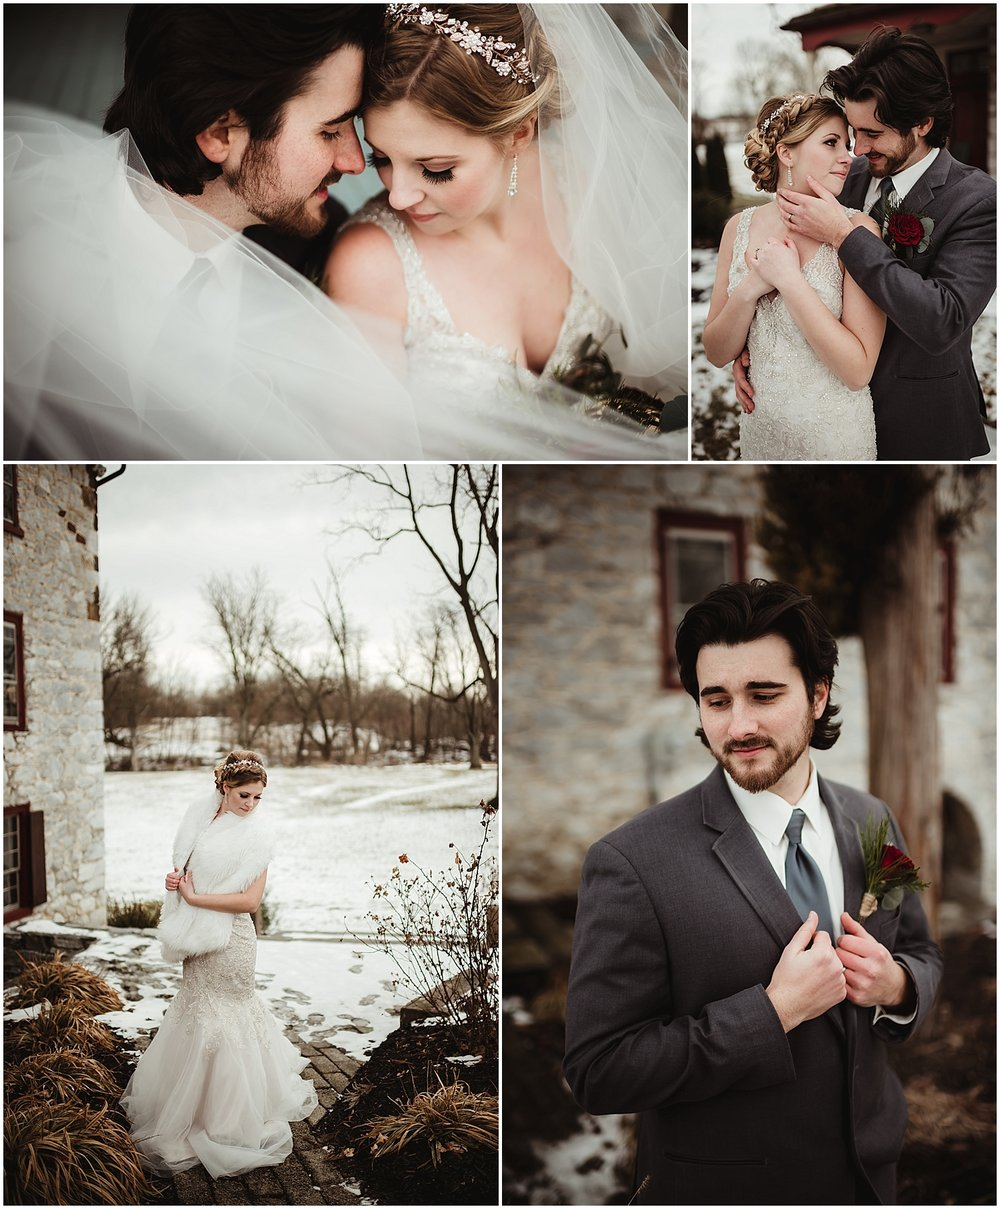 Snowy Winter Wedding at the Tulpehocken Manor in Myerstown PA by NEPA Wedding Photographer